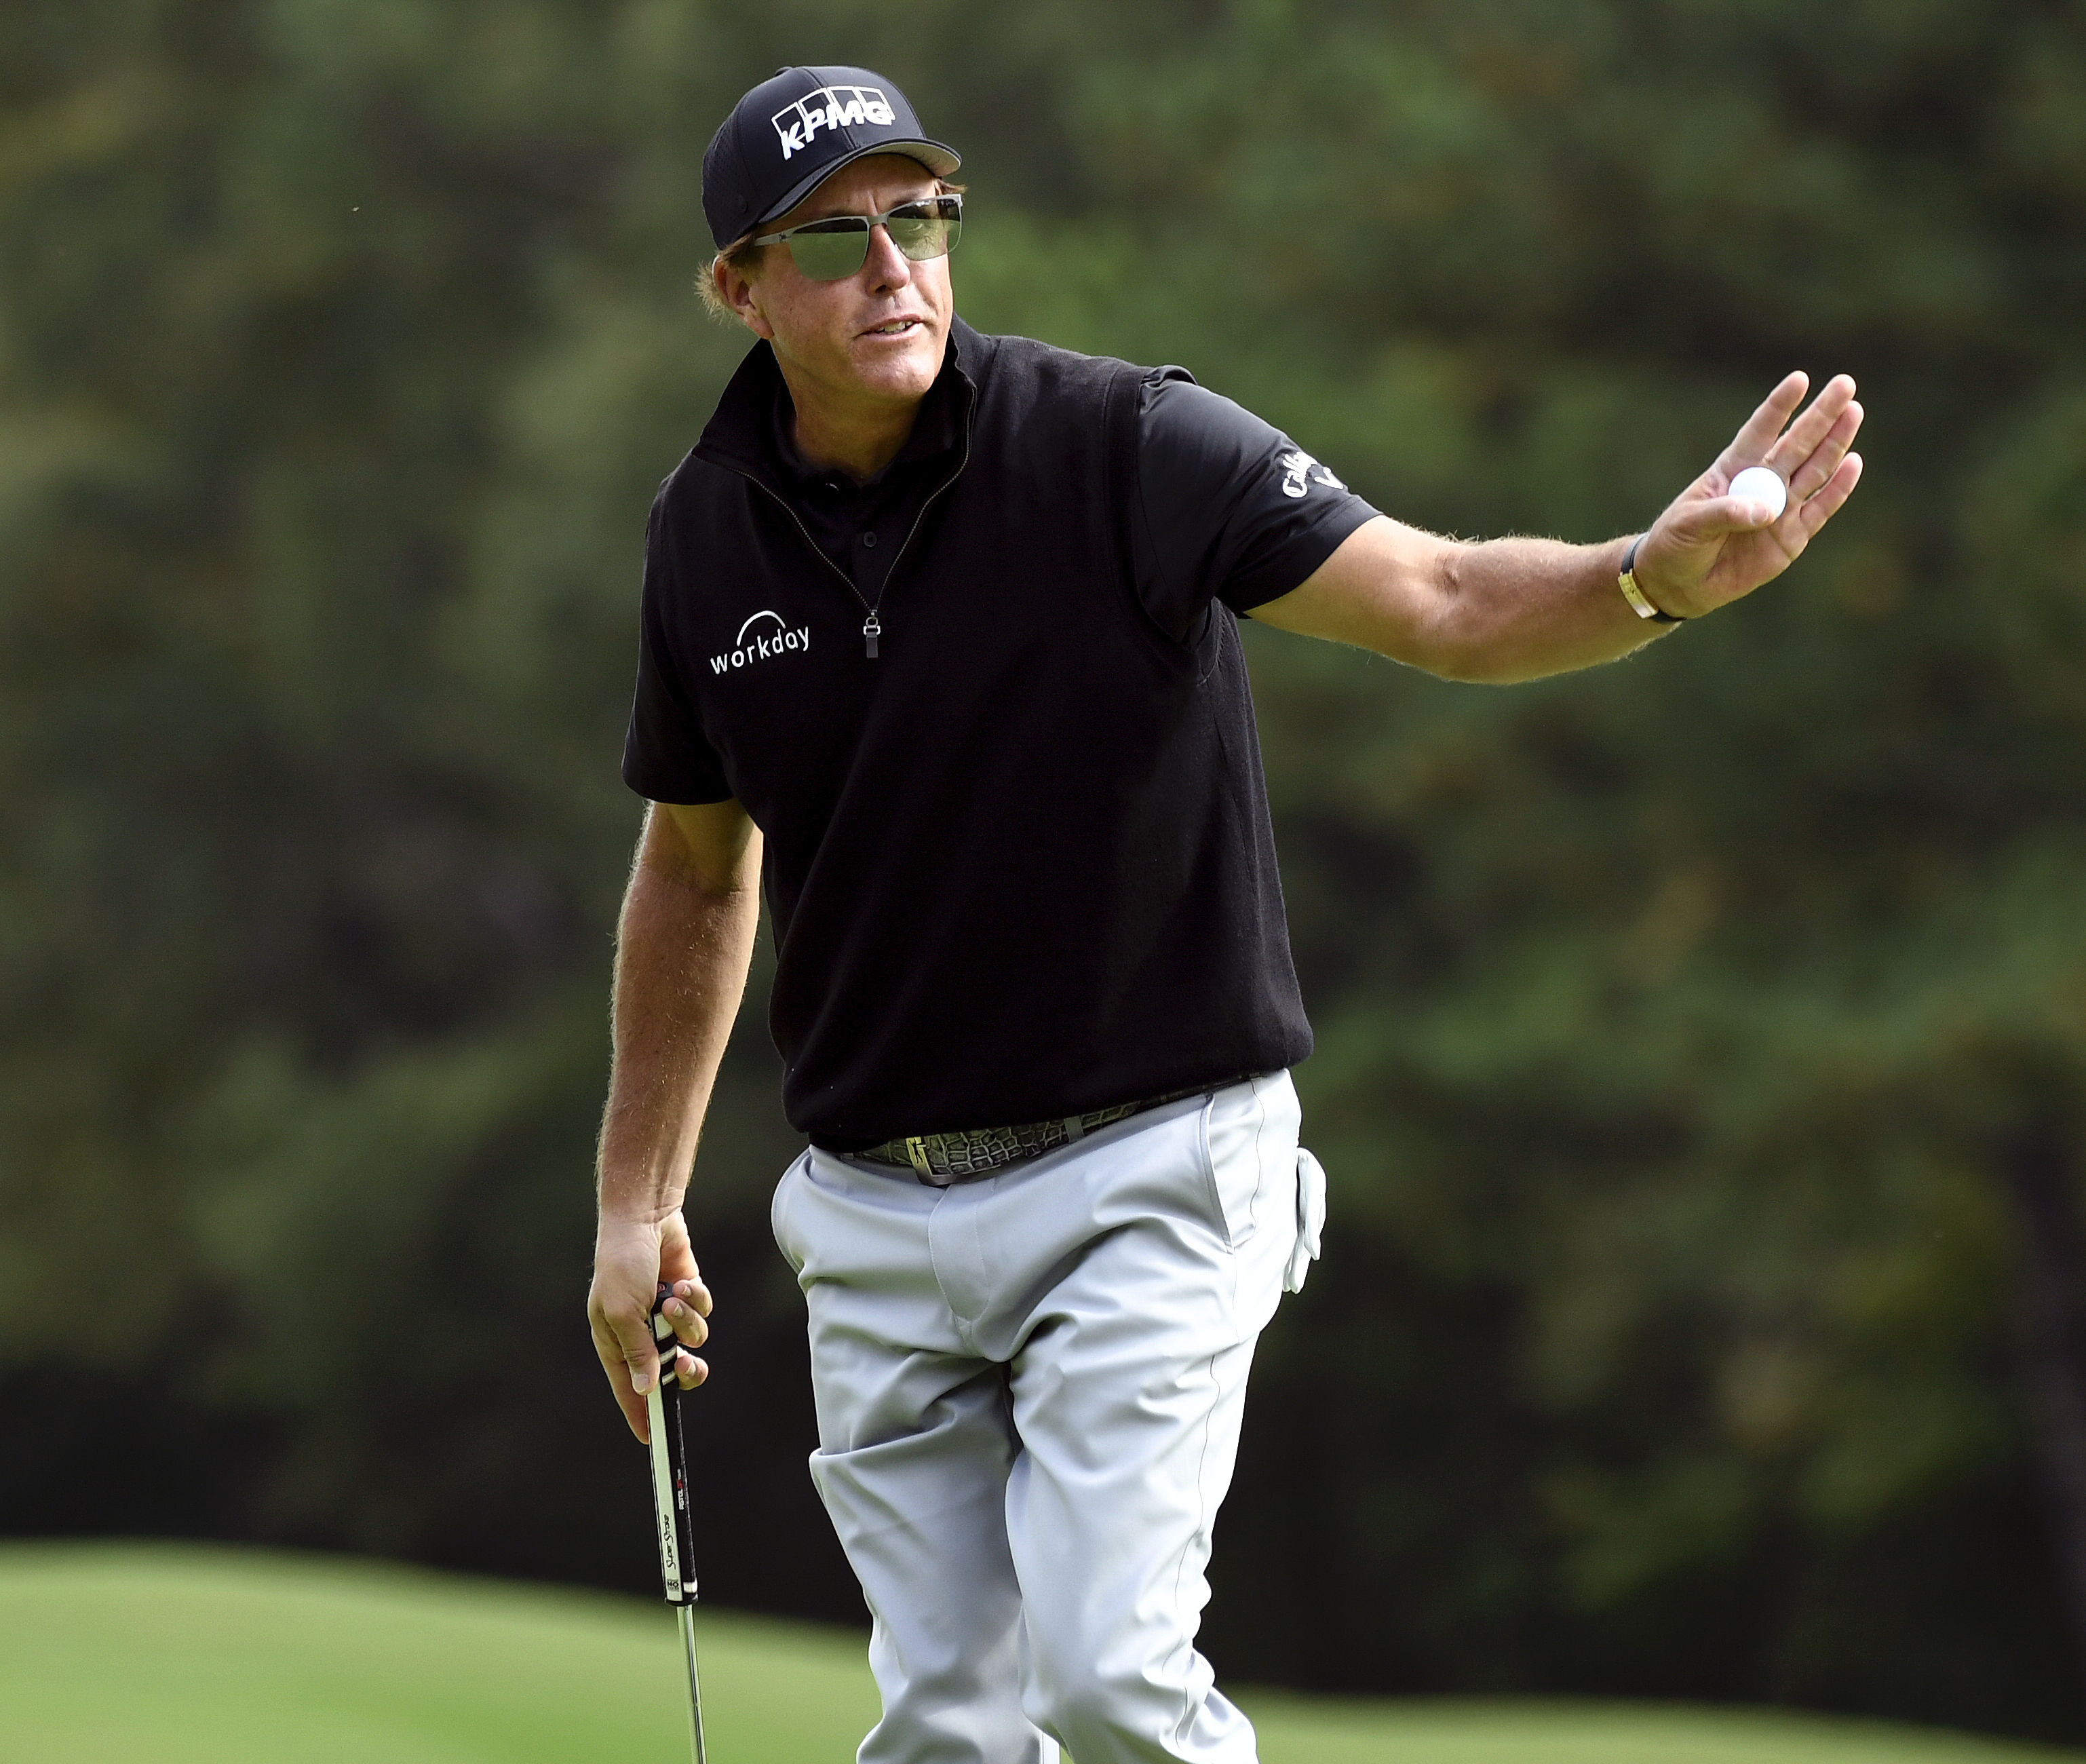 Concerned about COVID, Phil Mickelson balks at playing Houston ...